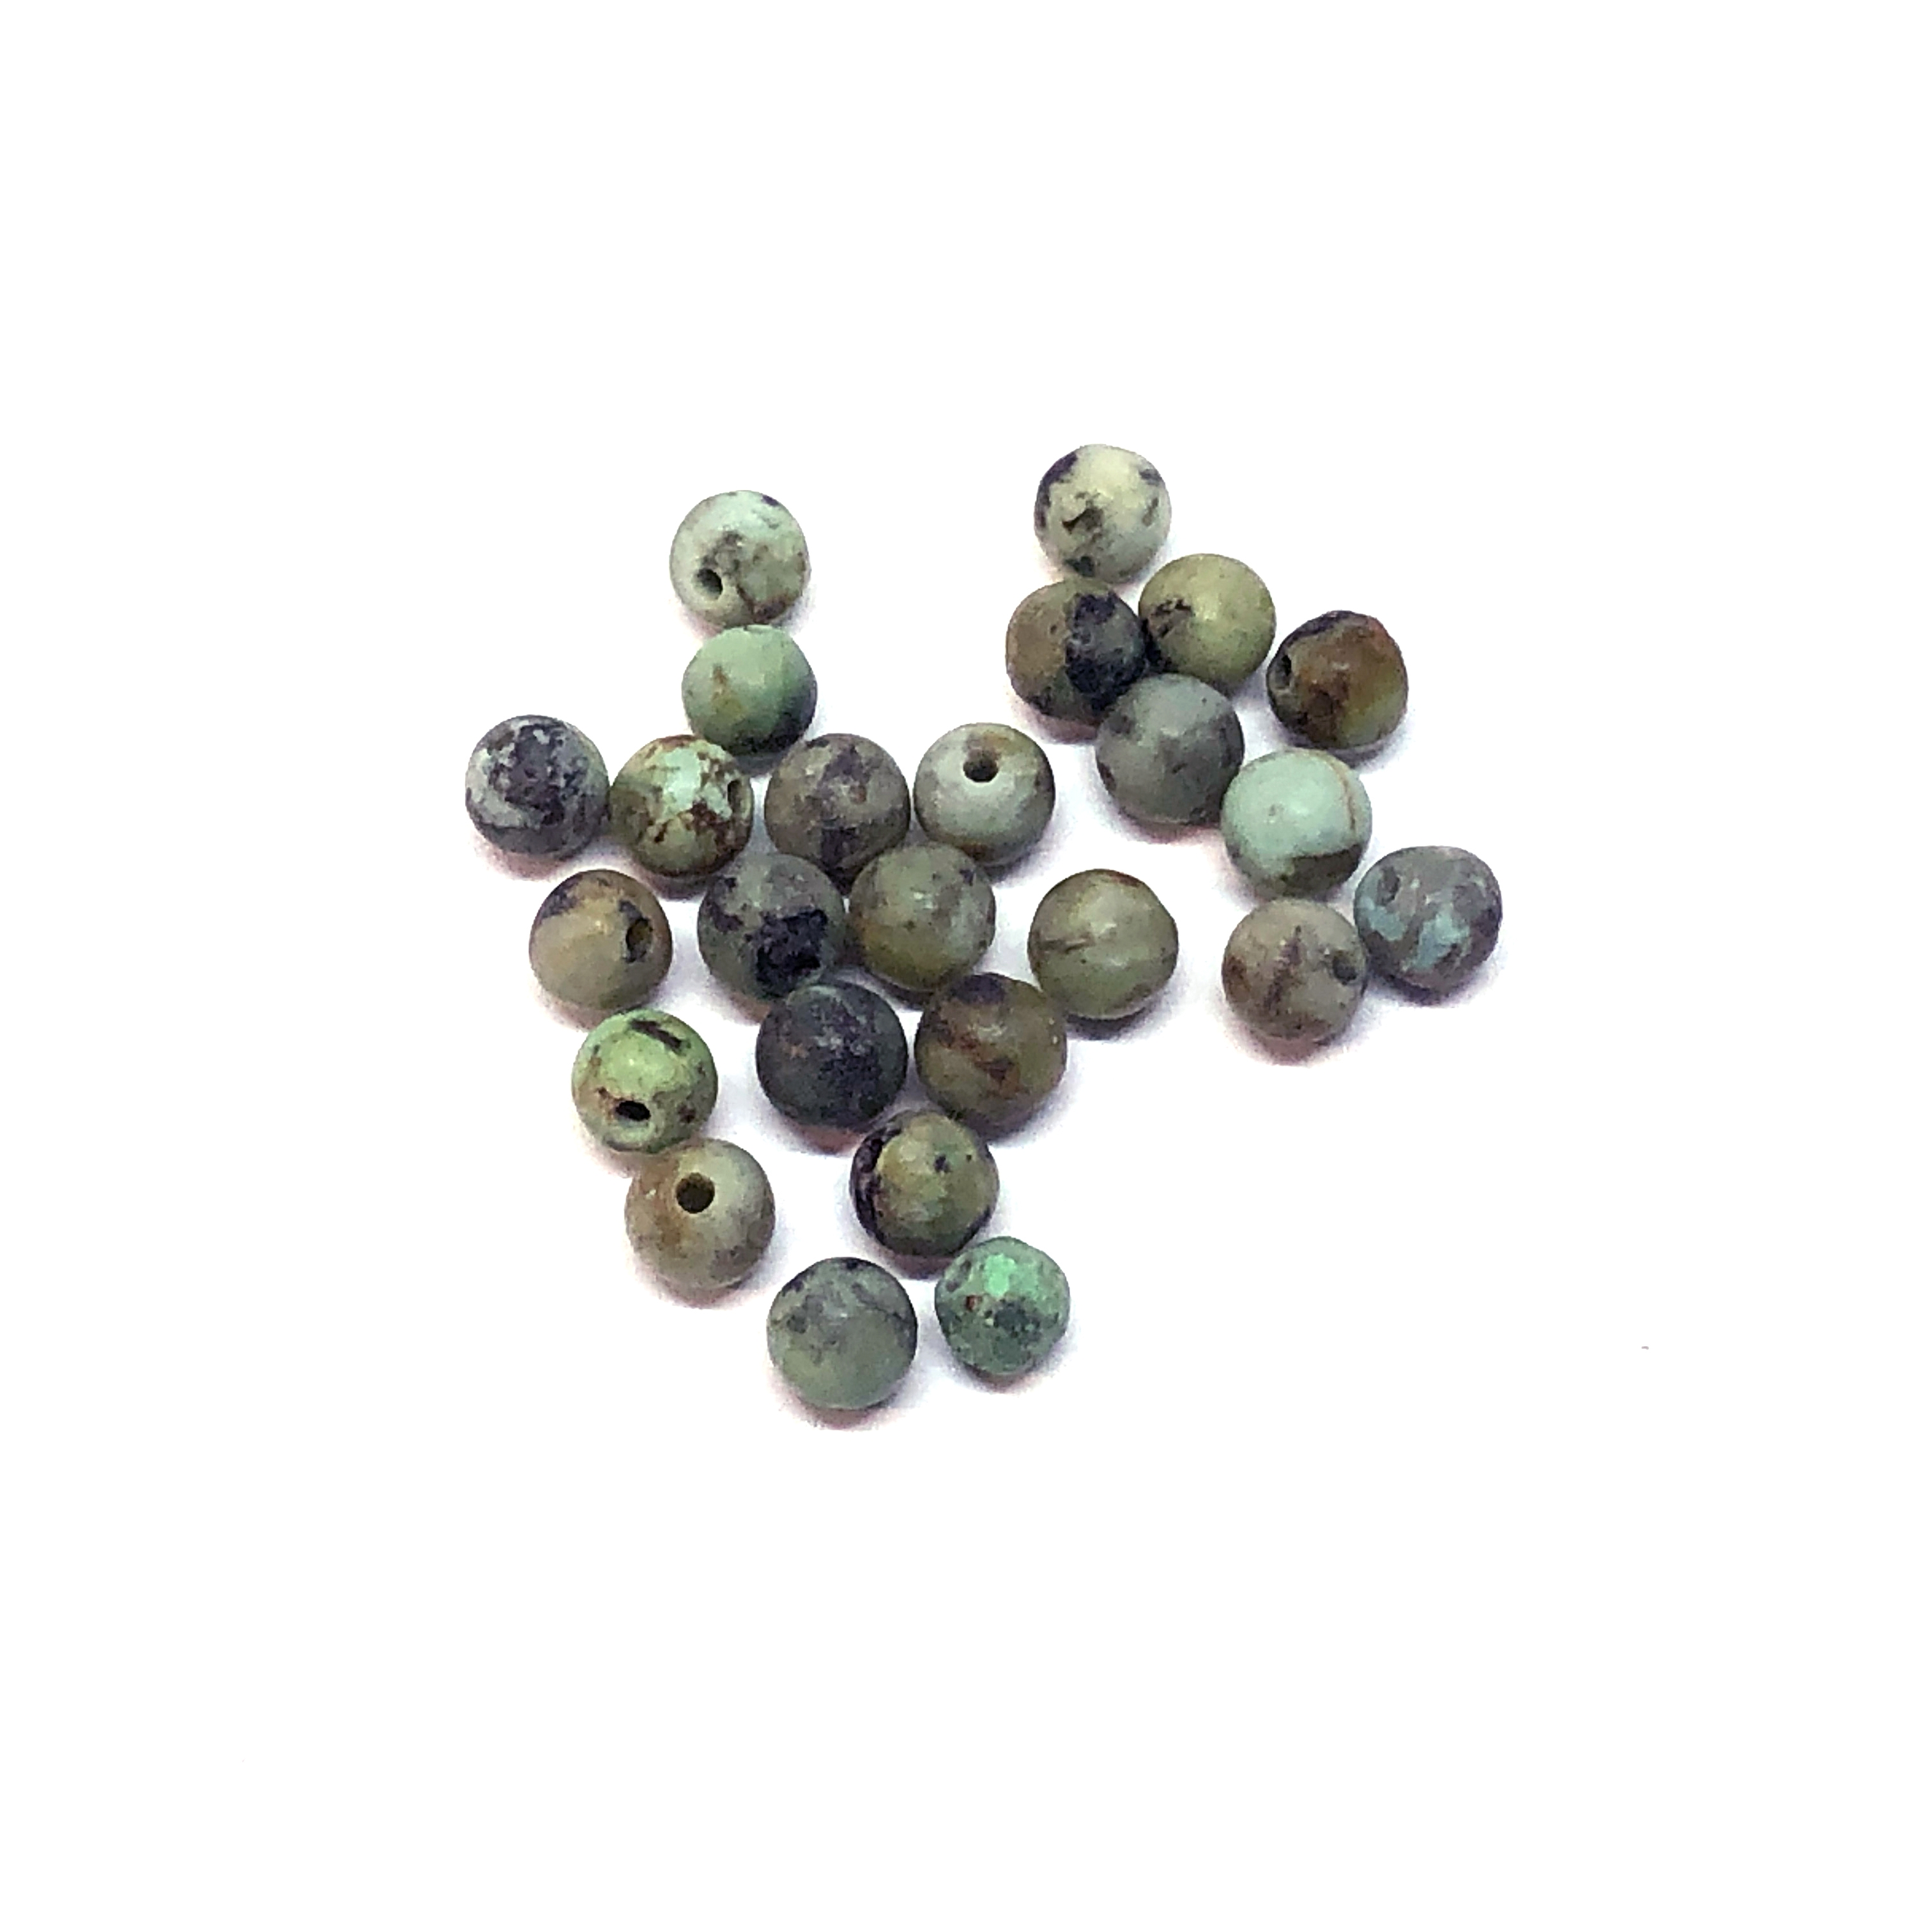 semi precious stone beads, African turquoise, earth tones, natural beads with earth tones, stone beads, turquoise, 4mm, 4mm stone beads, B'sue Boutiques, semi precious beads, 08805